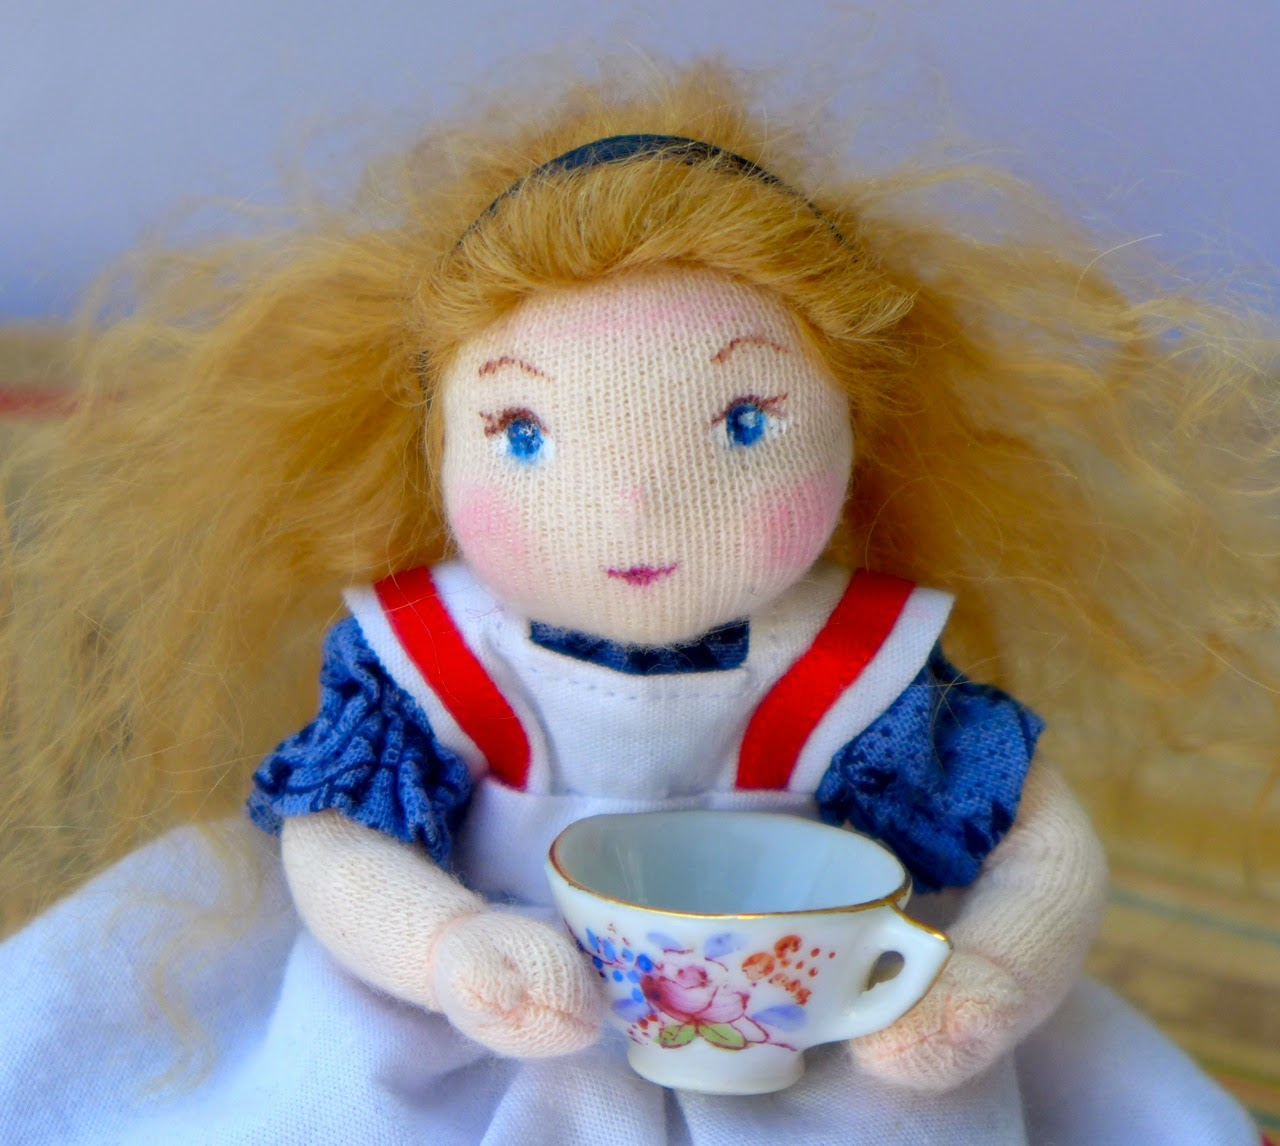 https://www.etsy.com/listing/197385182/alice-in-wonderland-miniature-art-doll